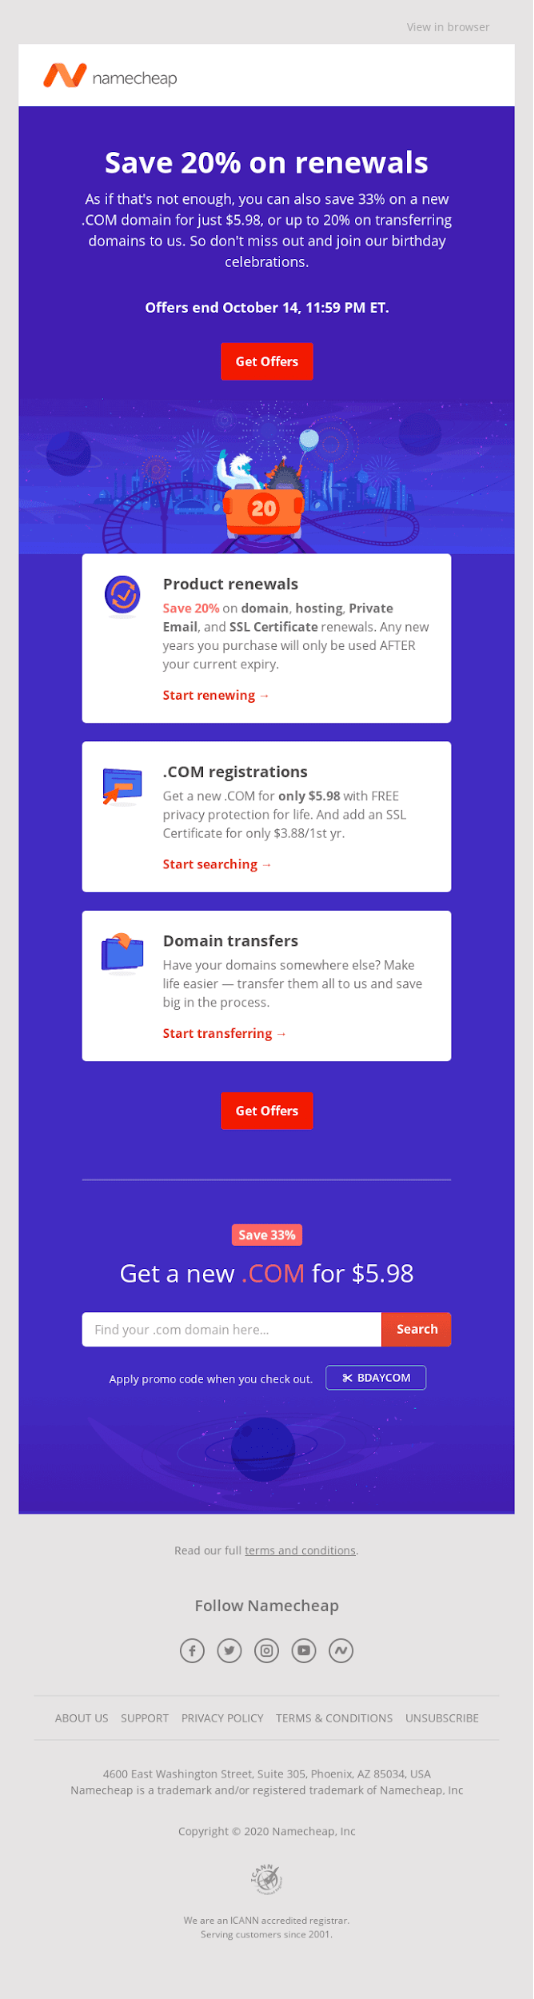 How to Increase Email CTR - Namecheap